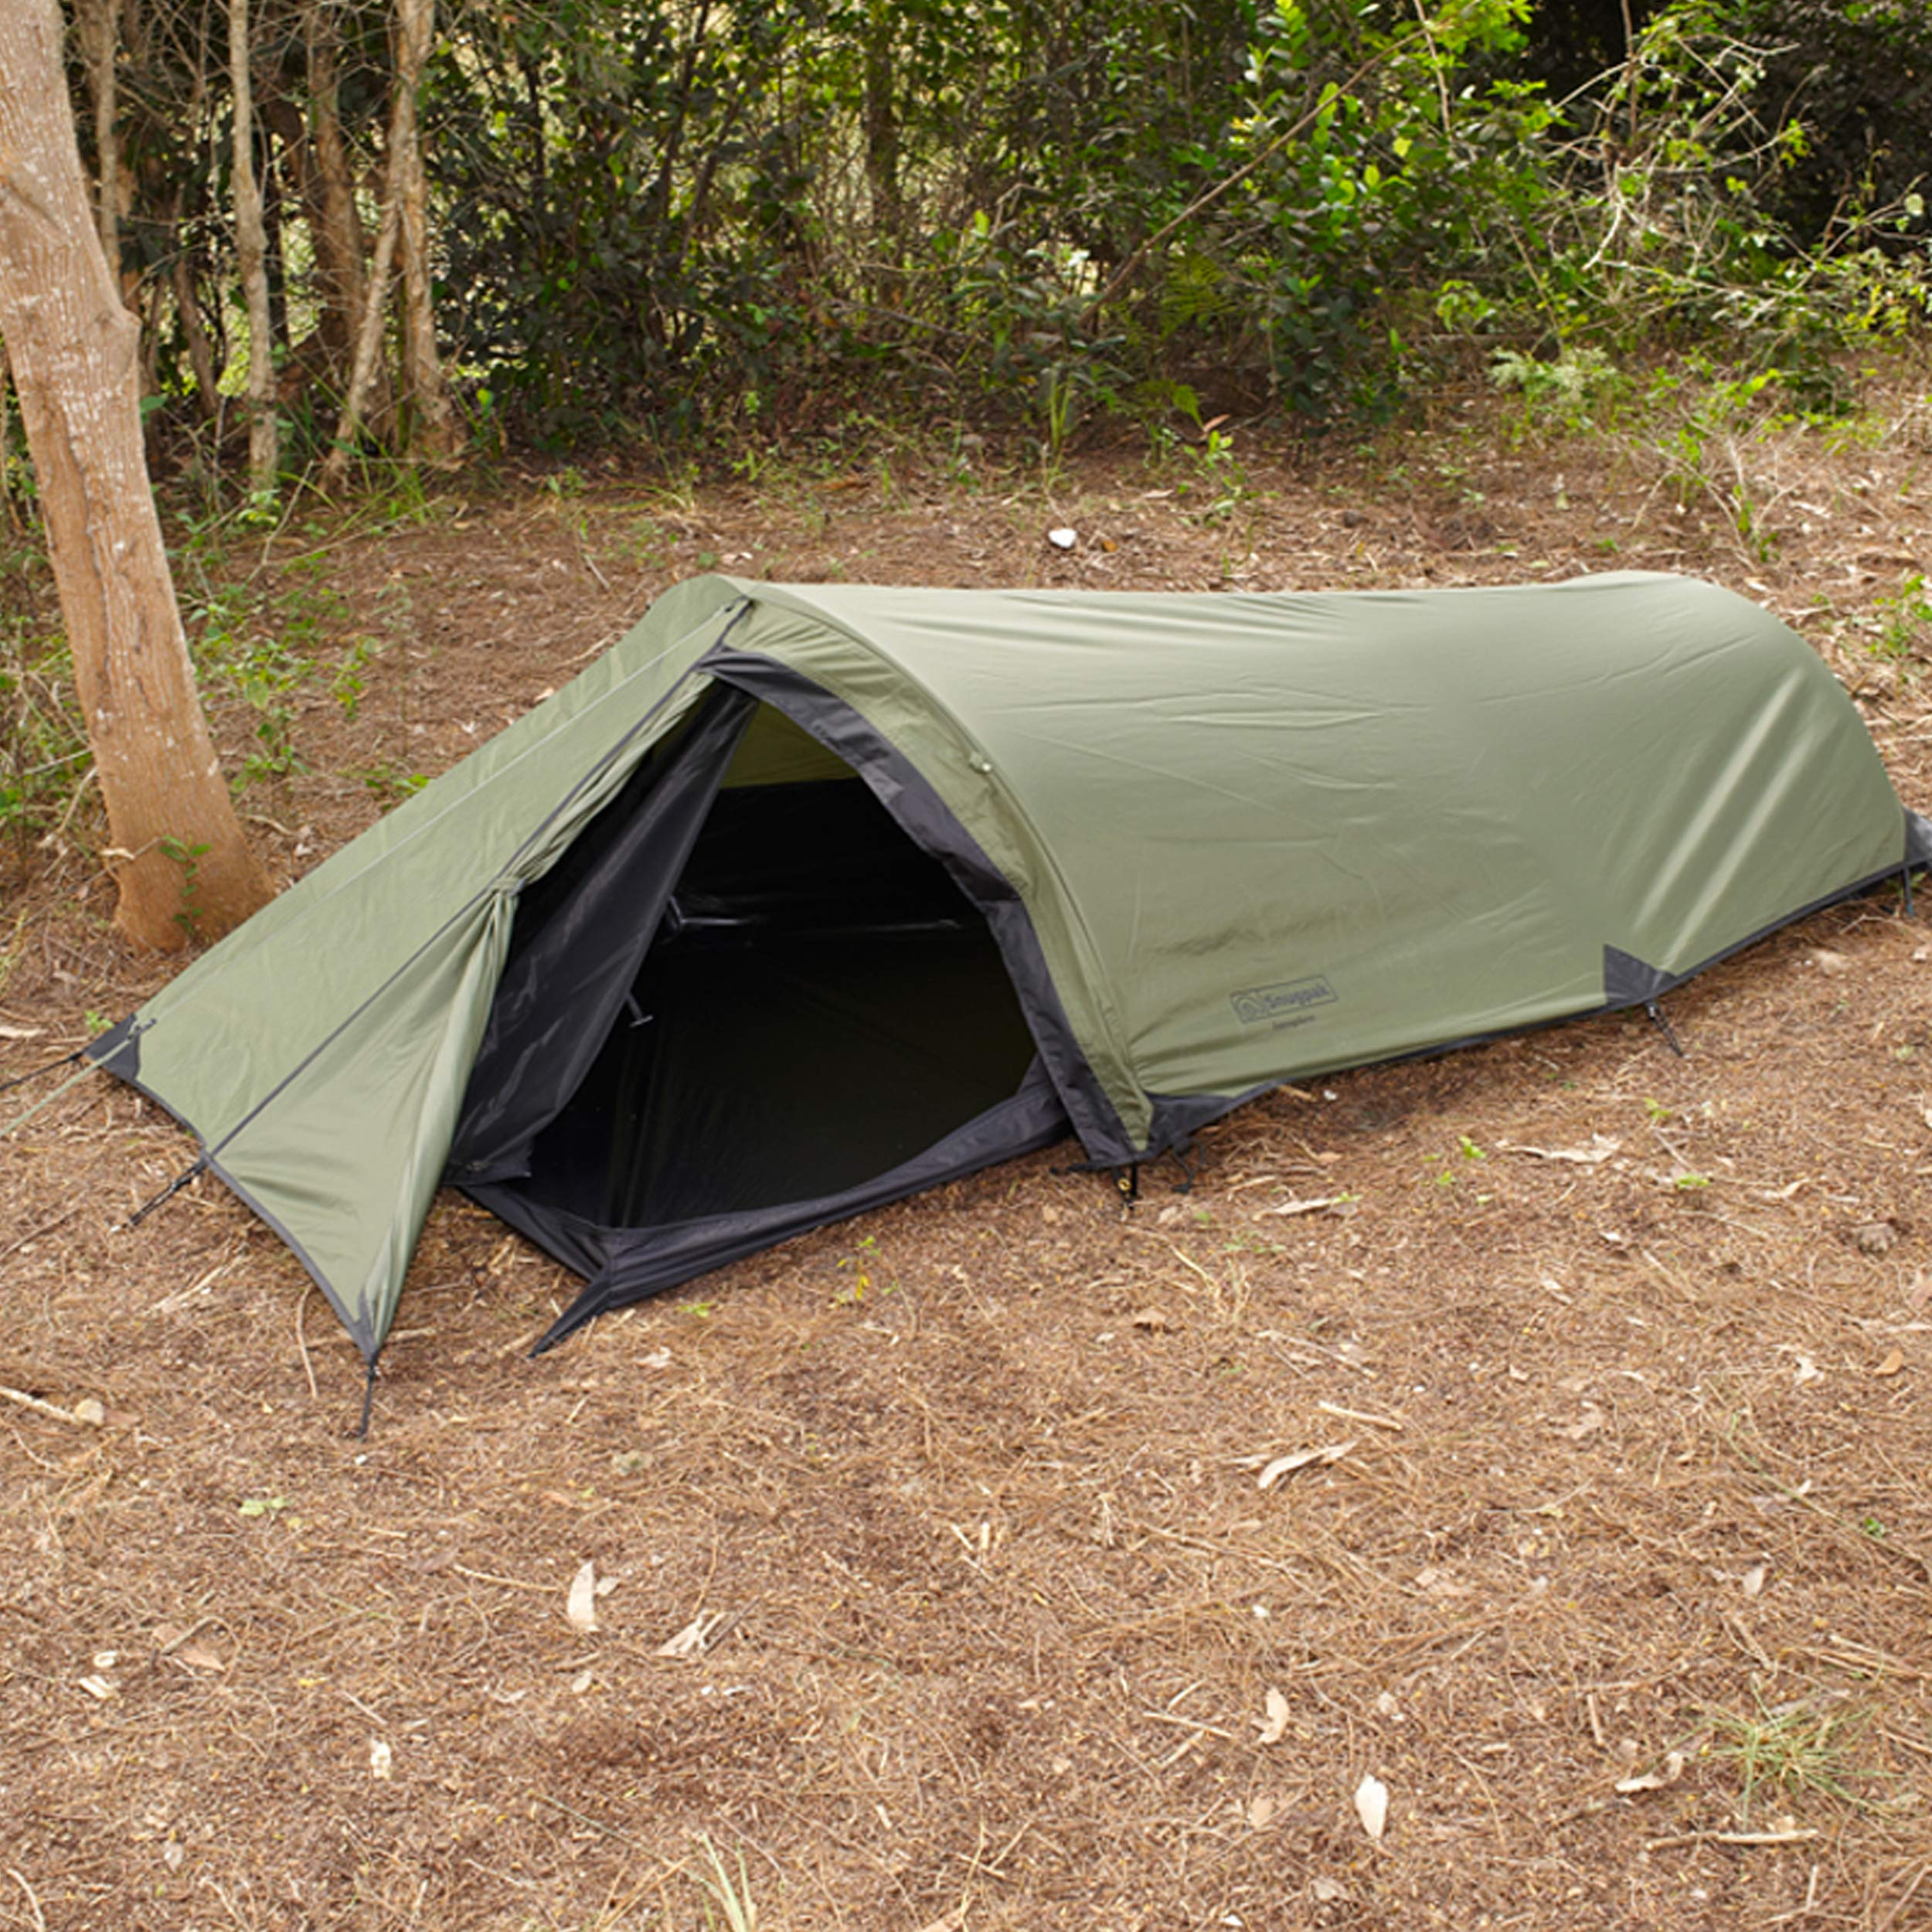 Snugpak Ionosphere 1 Person Tent, 94 inches x 35 inches x 28 inches, Waterproof Polyester and Nylon, Olive by Snugpak